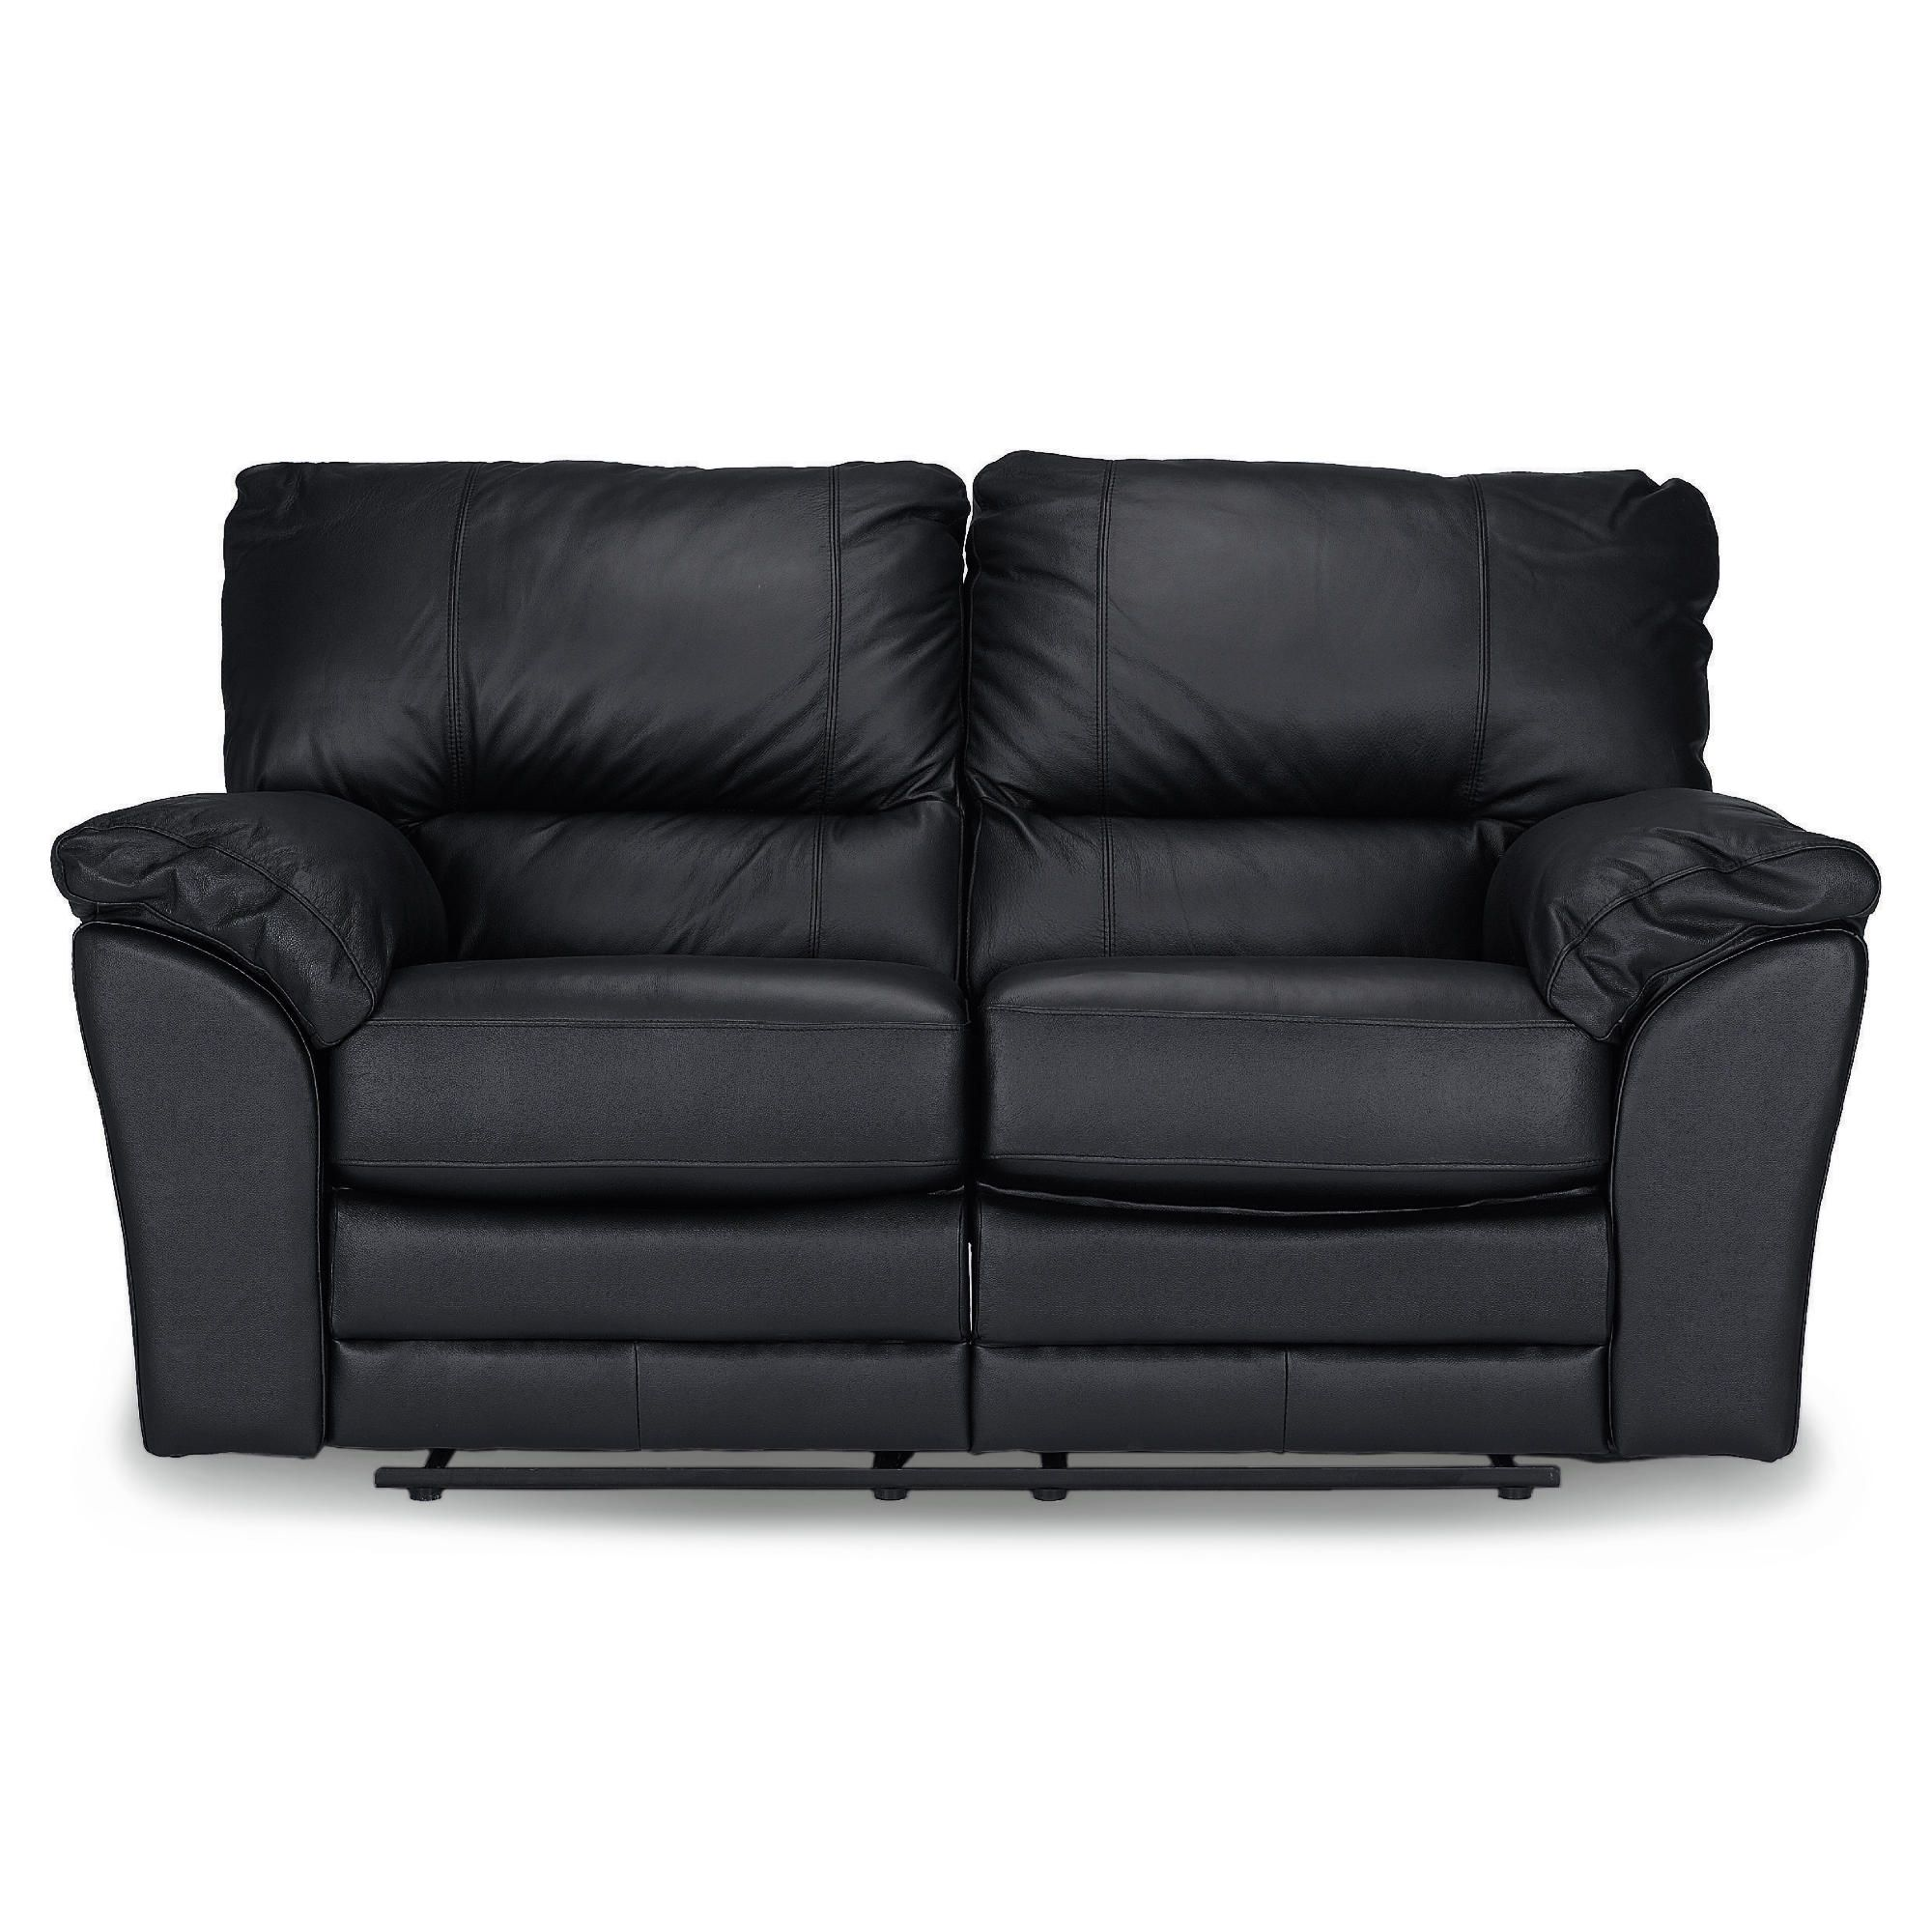 Madrid Small Leather Recliner Sofa, Black at Tescos Direct